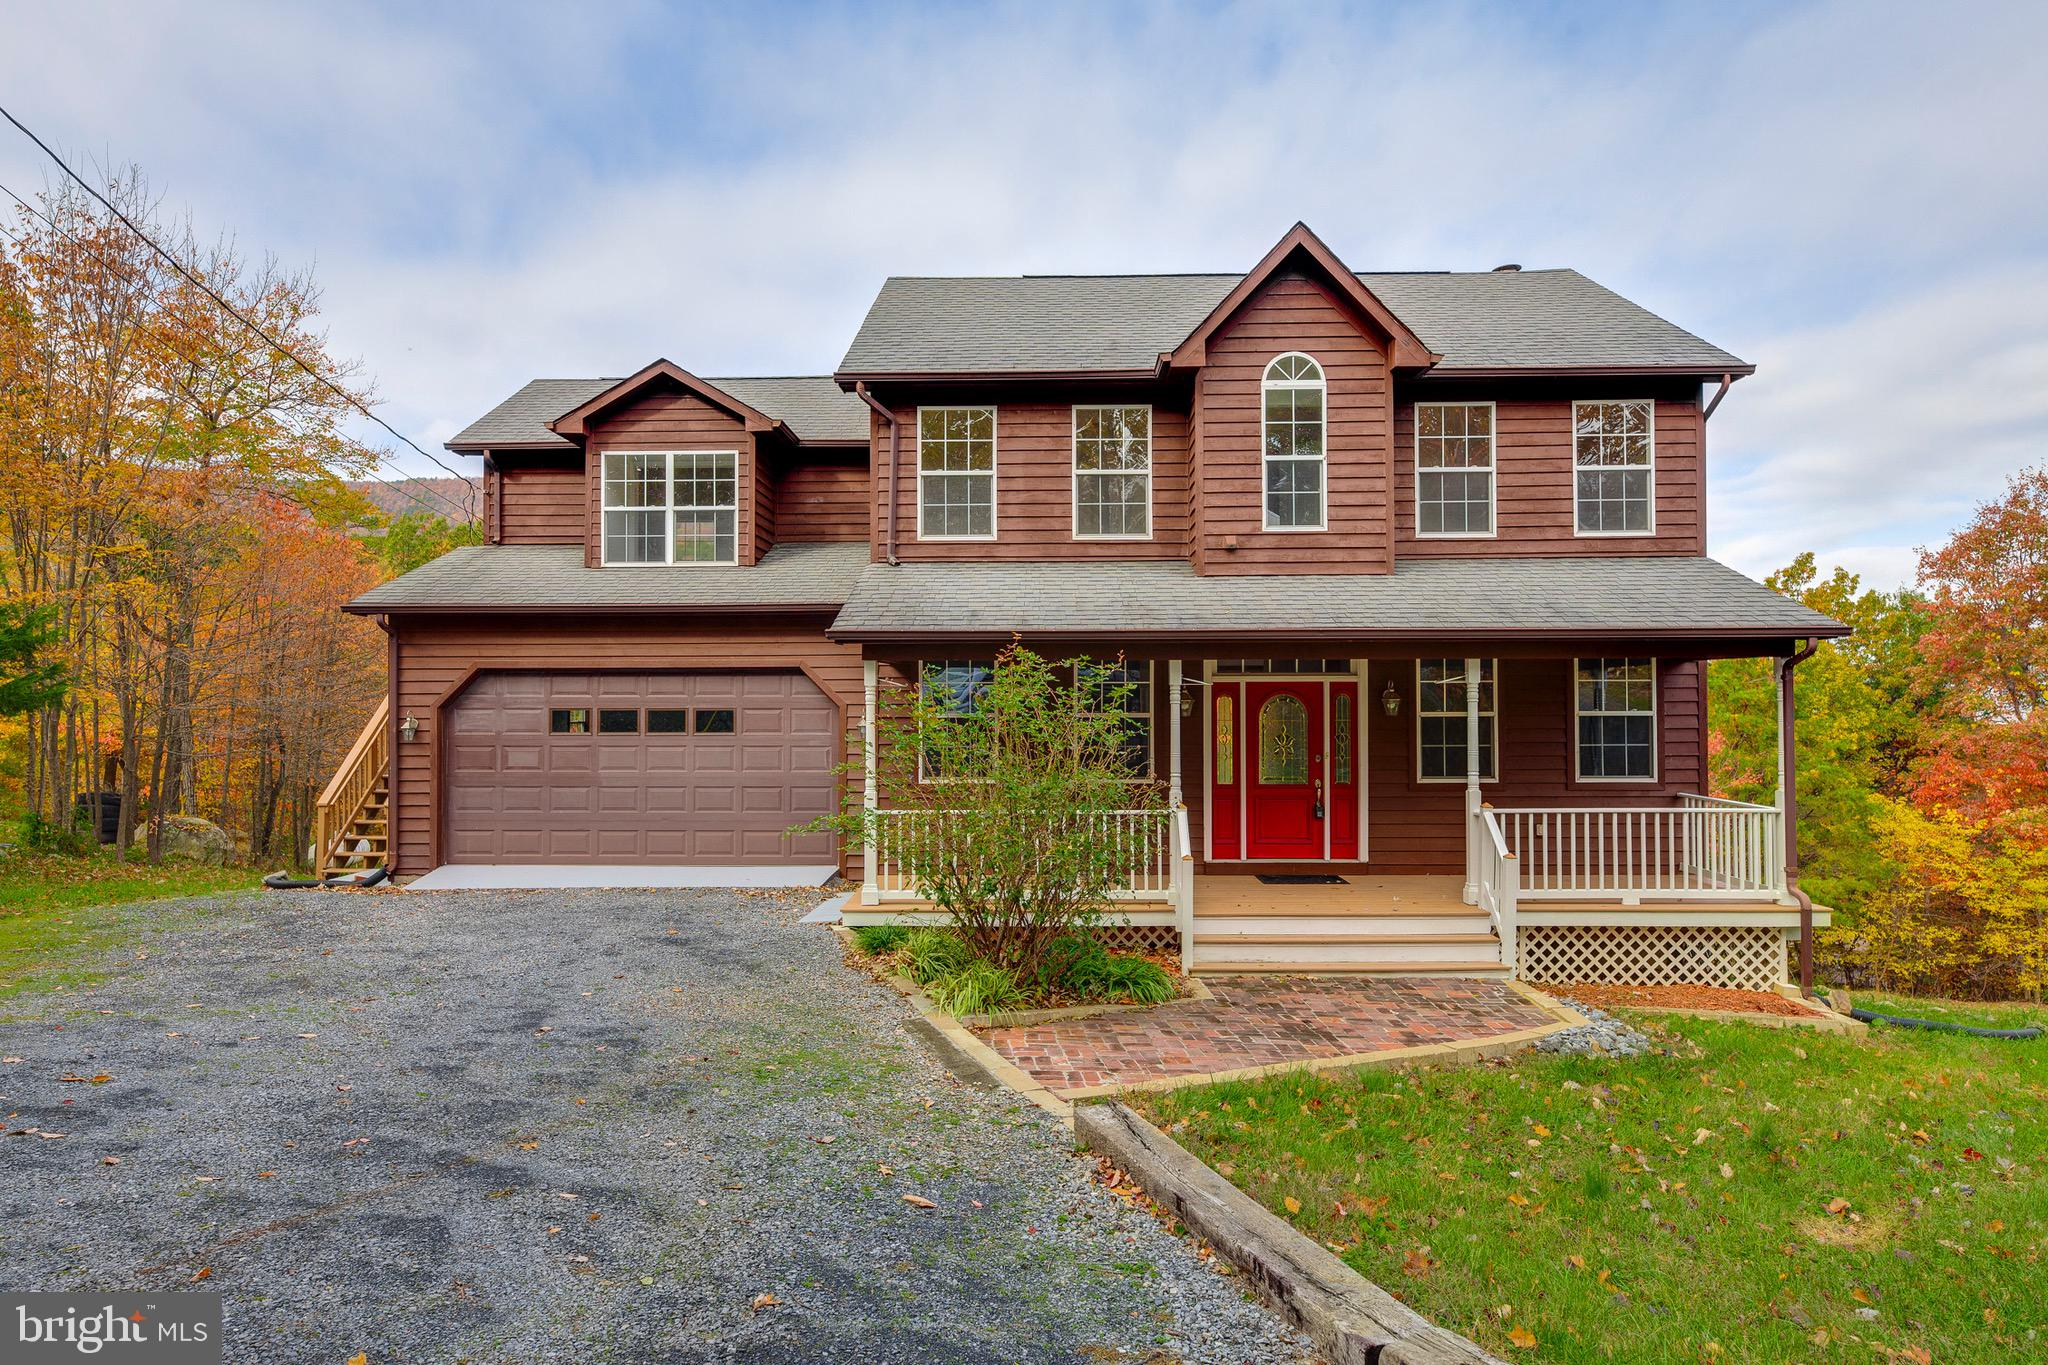 This impeccable home with beautiful views of GW National Park offers 3 bedrooms, 2.5 baths, 2 car garage, Hardwood throughout main and upper level. The kitchen offers a wall oven and cook top. A cozy fireplace in the family room can be gas or wood burning, Spacious master with luxury bath and walk in closet. A bonus room or MIL suite is over  the garage with its own exit. A upper level laundry room and 2 spacious bedrooms. Rec room and den are located in the basement with more room to expand or use for storage. Enjoy the deck while watching the wild life and mountain views. The present owner has owned the home since 2006. The home has been unoccupied during this time period and was winterized. All appliances have been unused during this time frame. The water heater is new and basically unused. The HVAC has not been used for have of it~s life span. The HVAC was recent inspected with new programable thermostats. Septic rated for 3 bedroom. Comcast Xfinity is available.